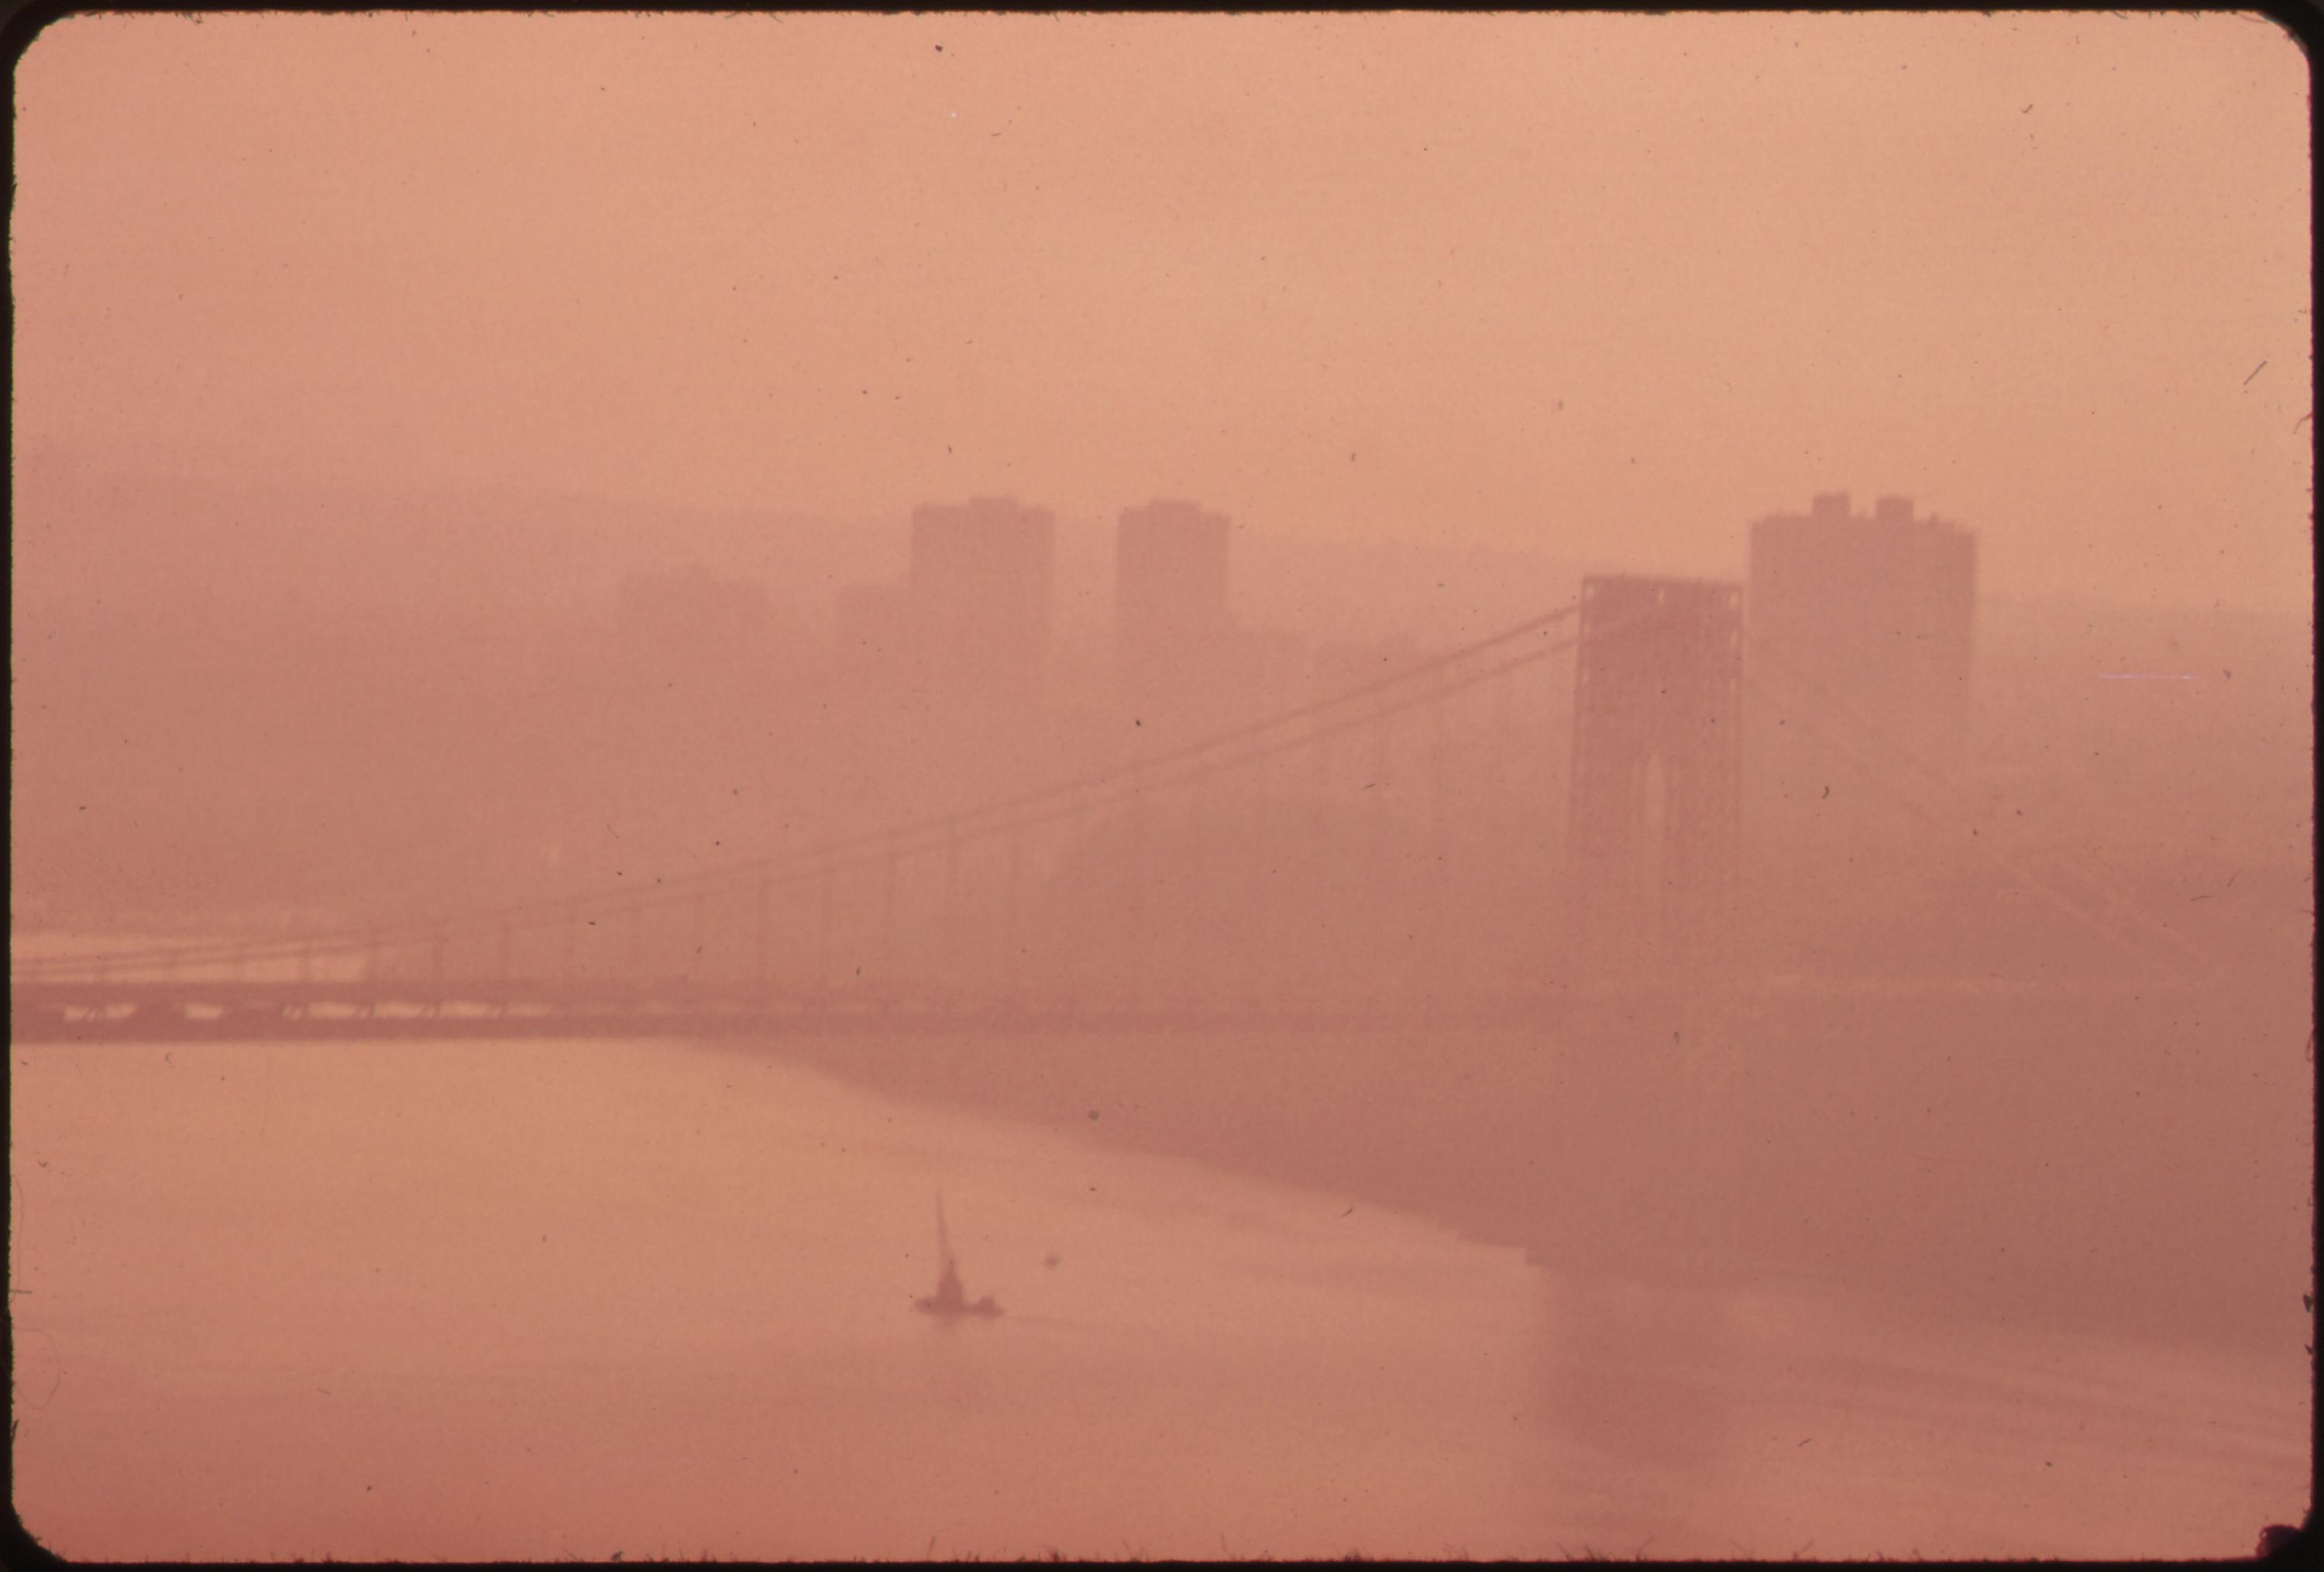 The George Washington Bridge in heavy smog, photographed during the early 1970s before many of today's clean air protections were put in place. This photograph is part of the Environmental Protection Agency's series to